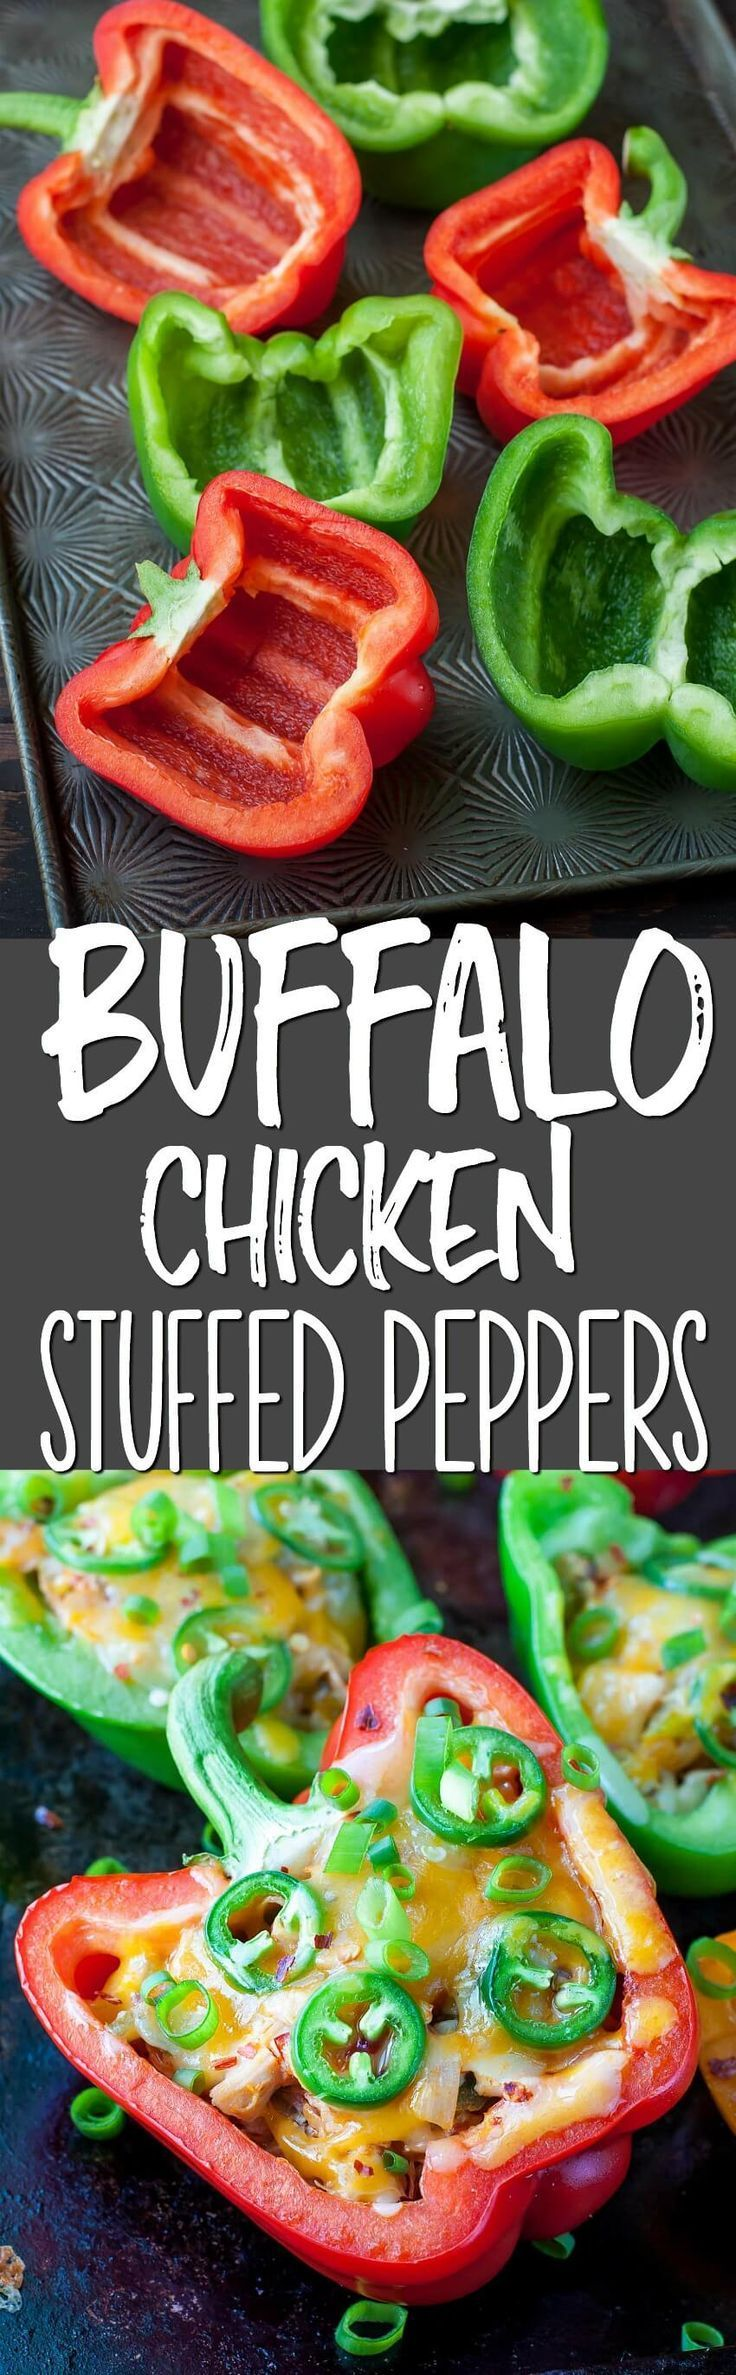 Break out the hot sauce and grab some bell peppers, we're making Cheesy Buffalo